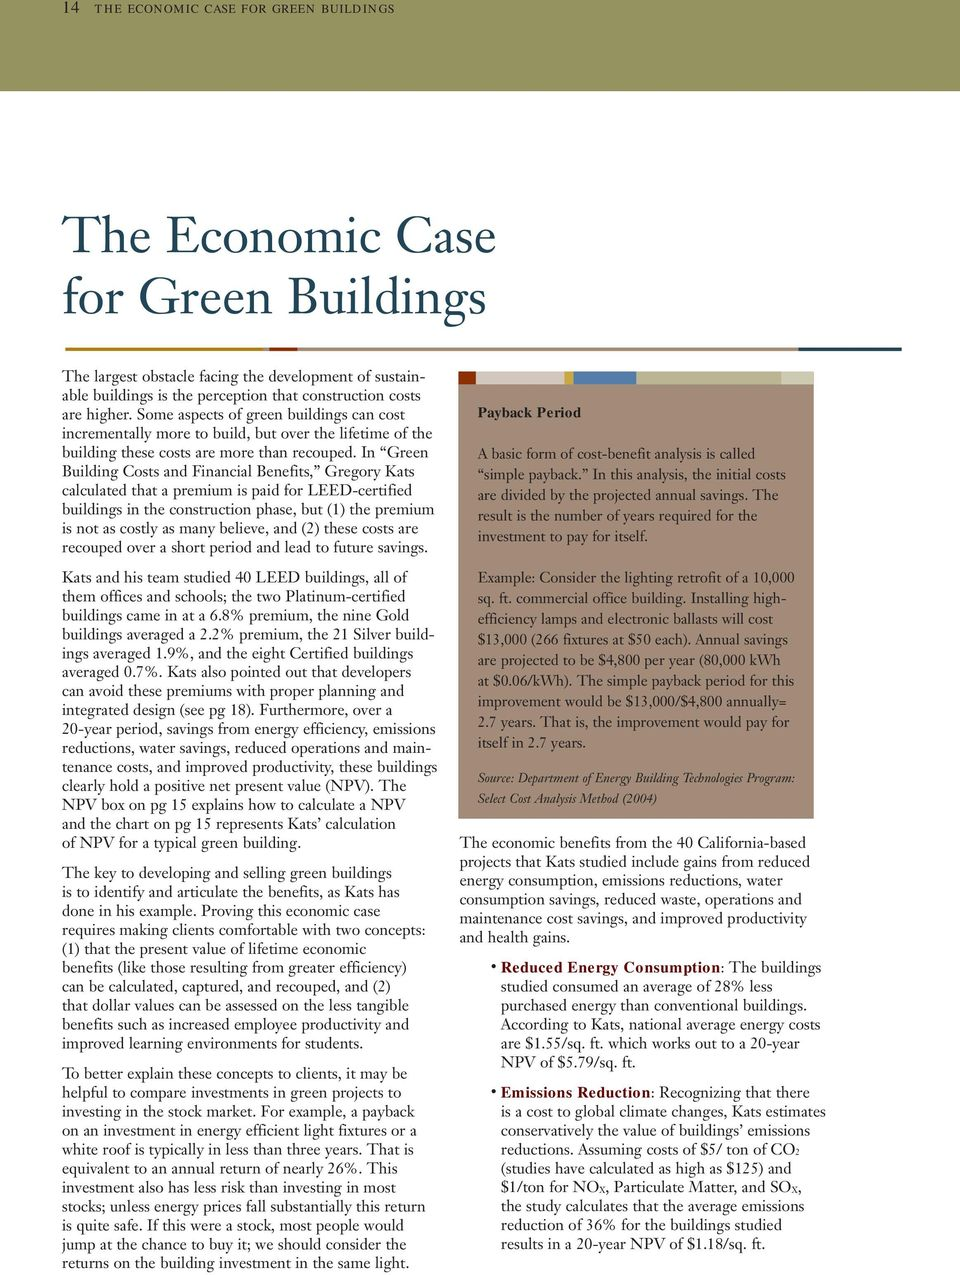 In Green Building Costs and Financial Benefits, Gregory Kats calculated that a premium is paid for LEED-certified buildings in the construction phase, but (1) the premium is not as costly as many